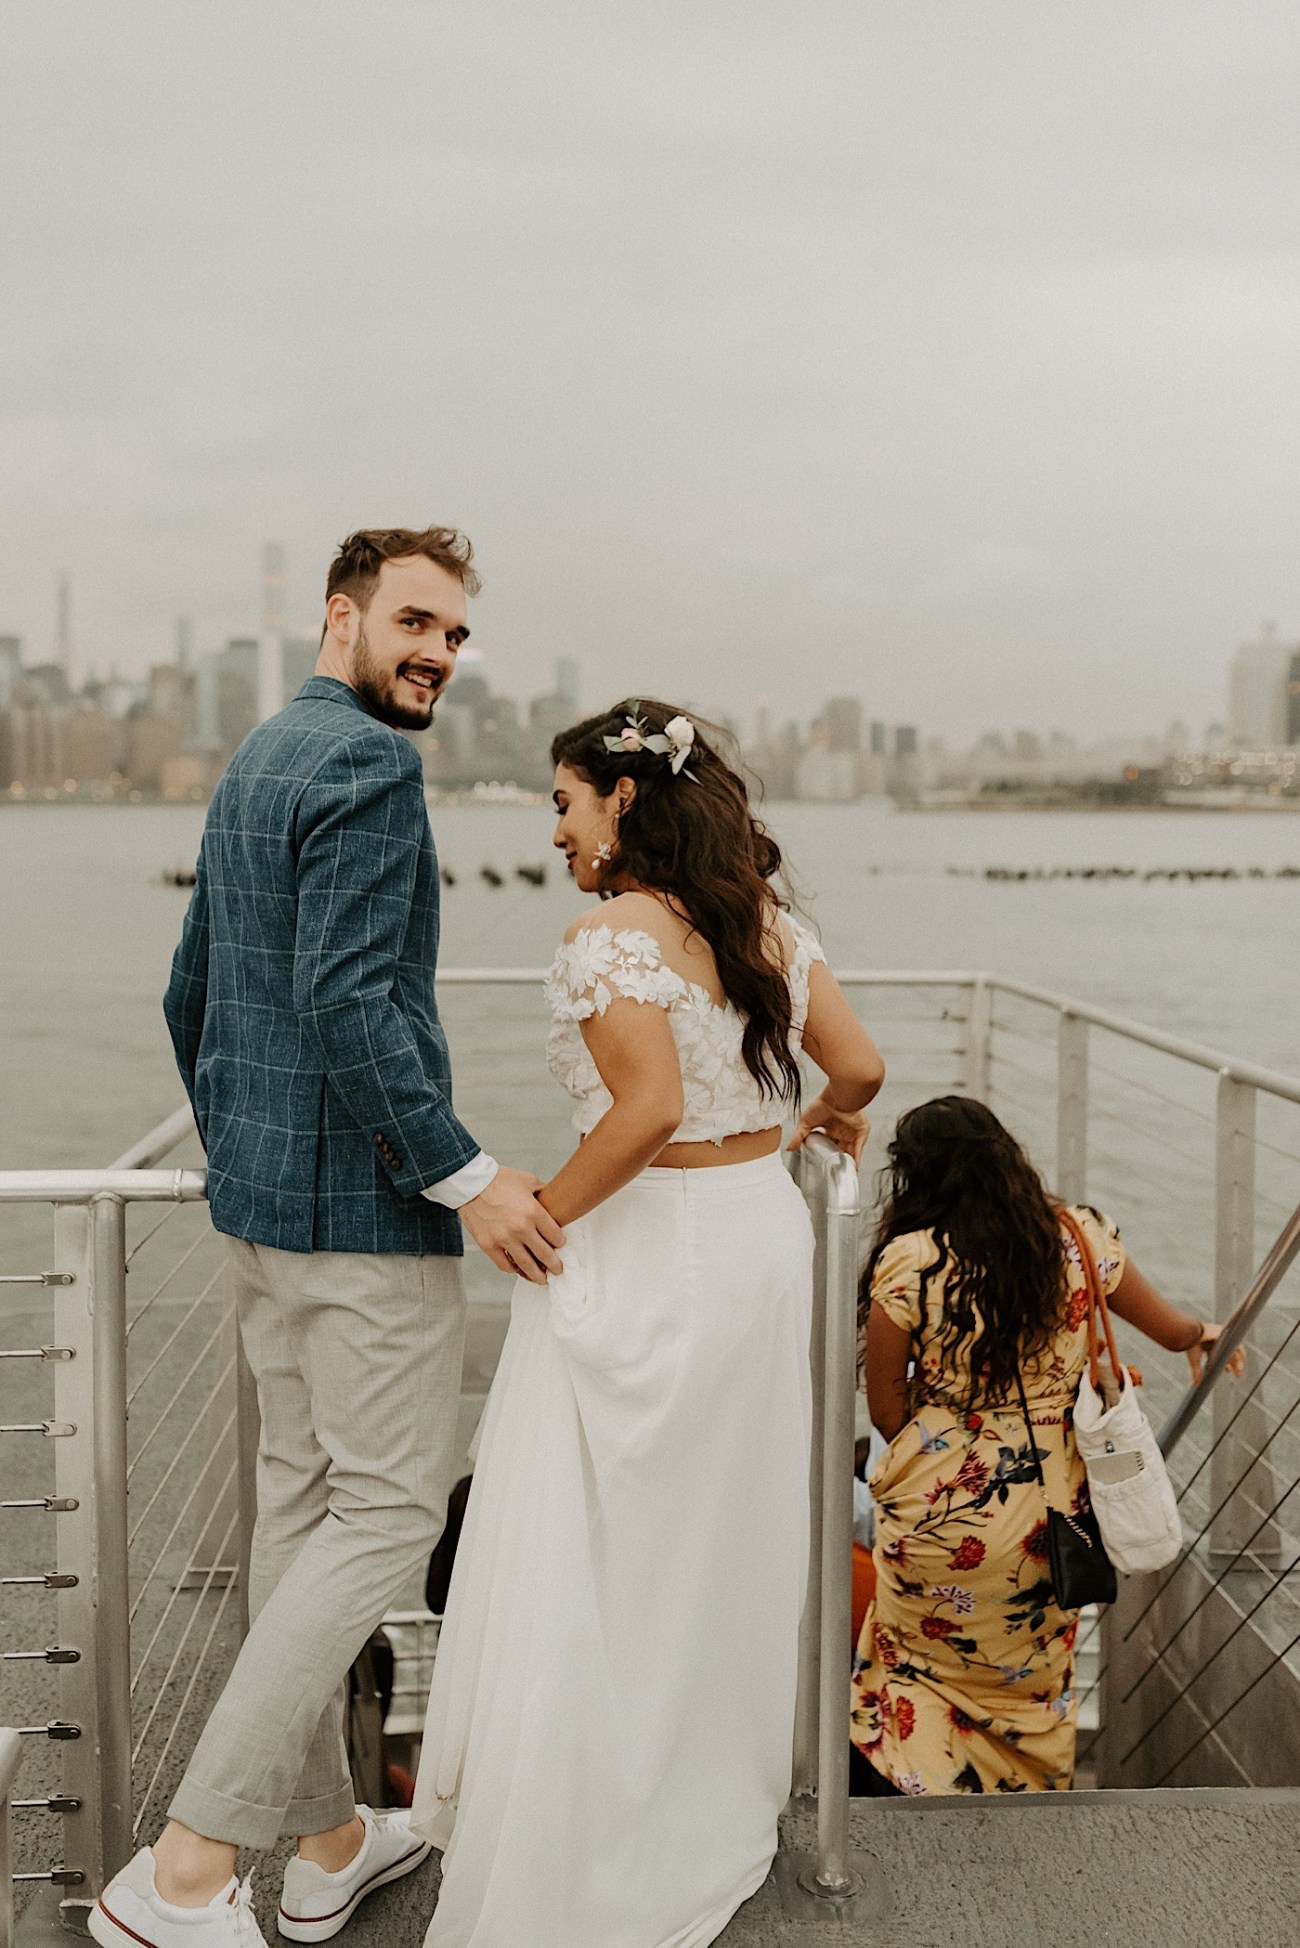 LIC Wedding Greenpoint Wedding LIC Elopement New York Wedding Photographer 063